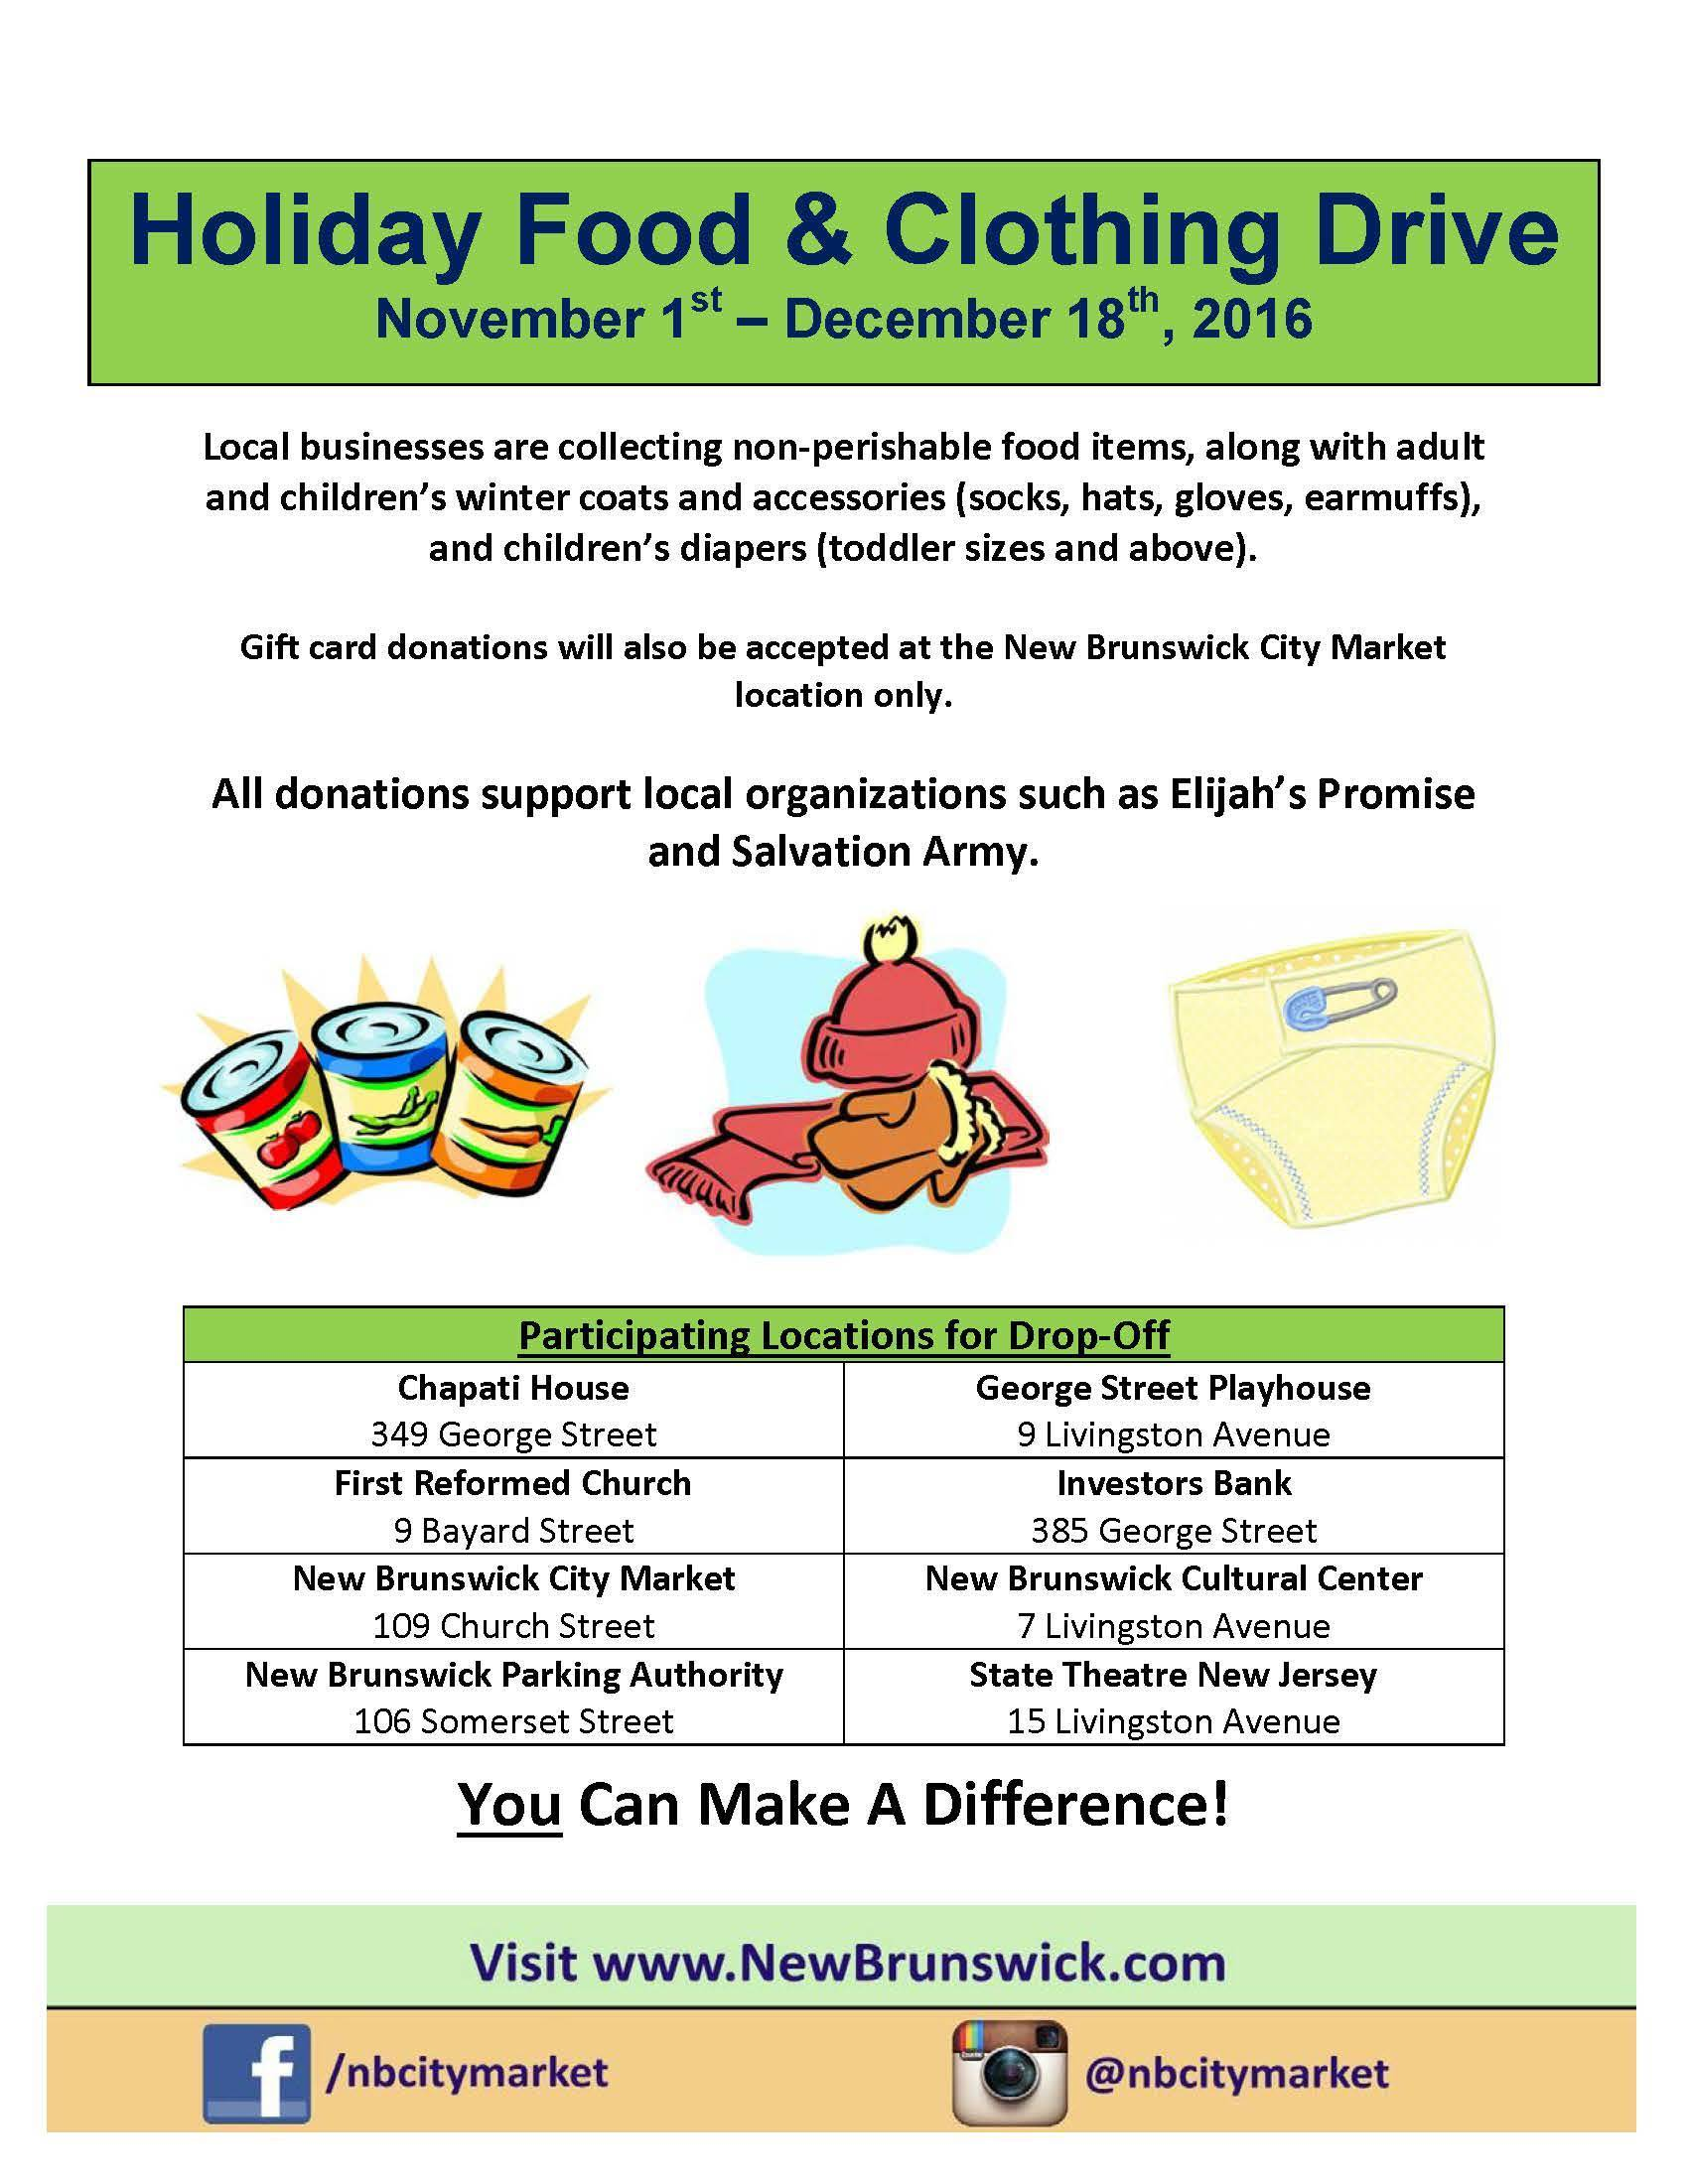 34a376d868388db1eb88_Holiday-Food-Drive-Flyer-Extended.jpg